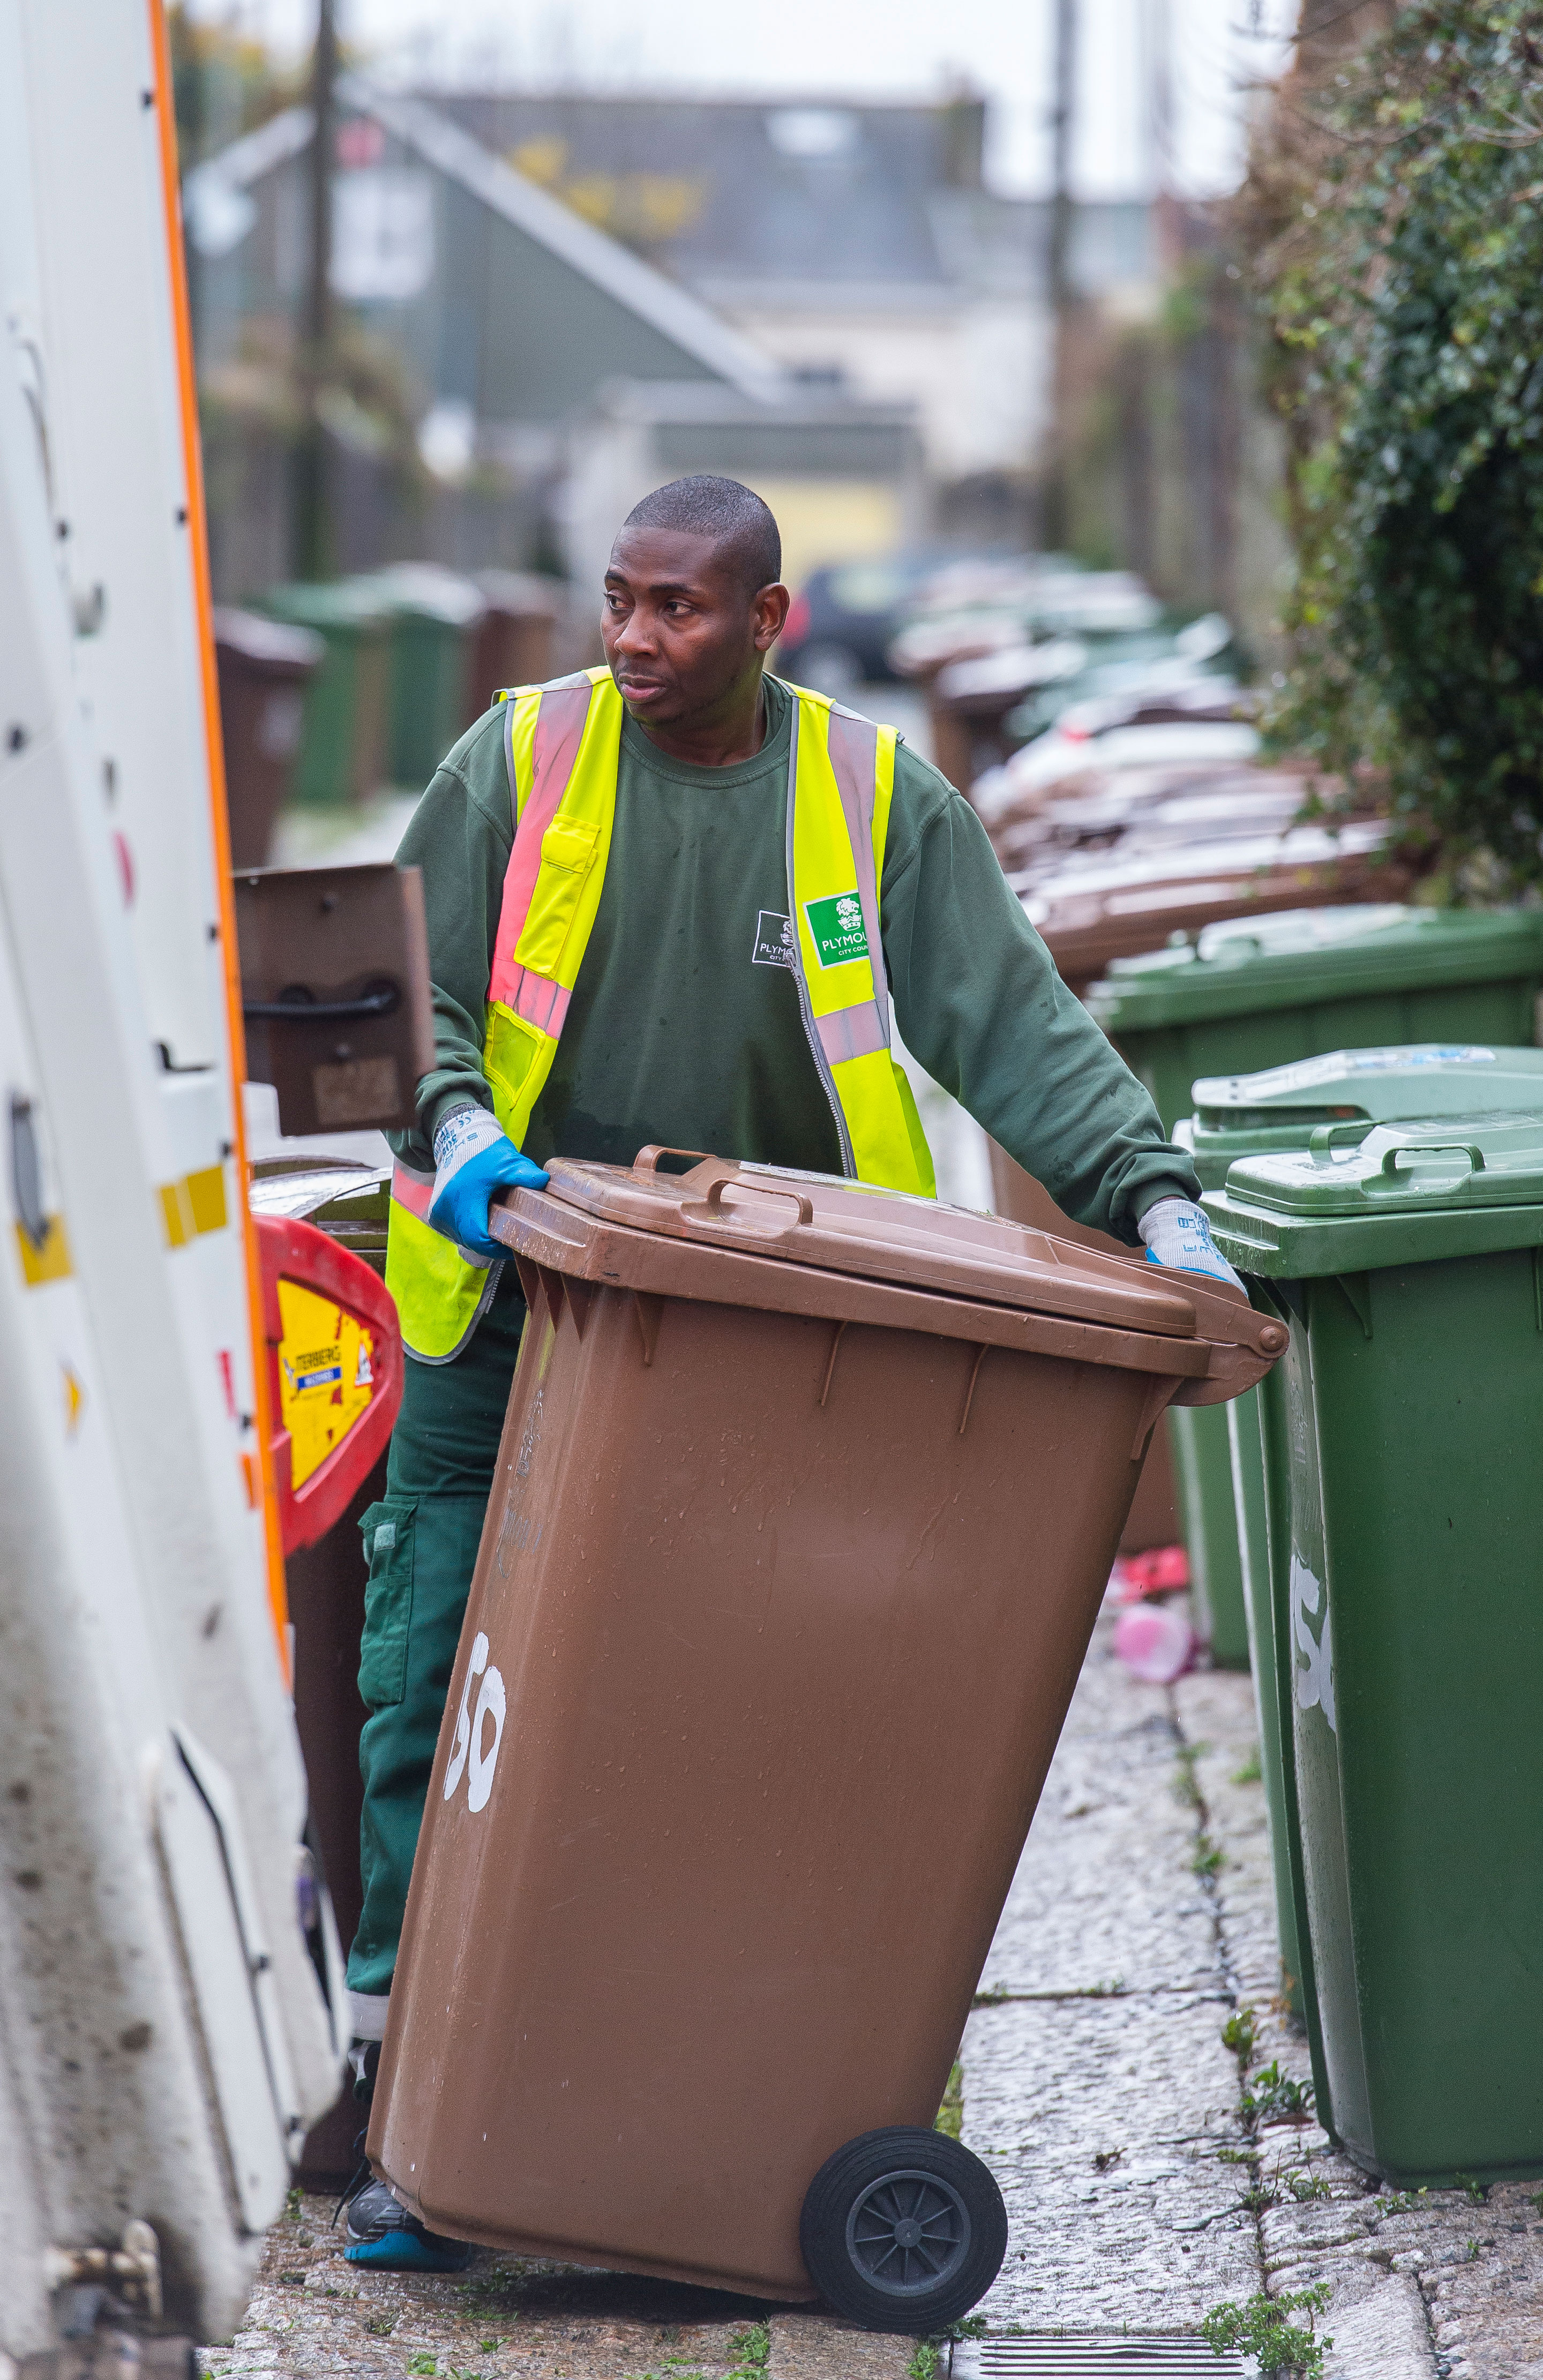 Refuse collector with brown bin